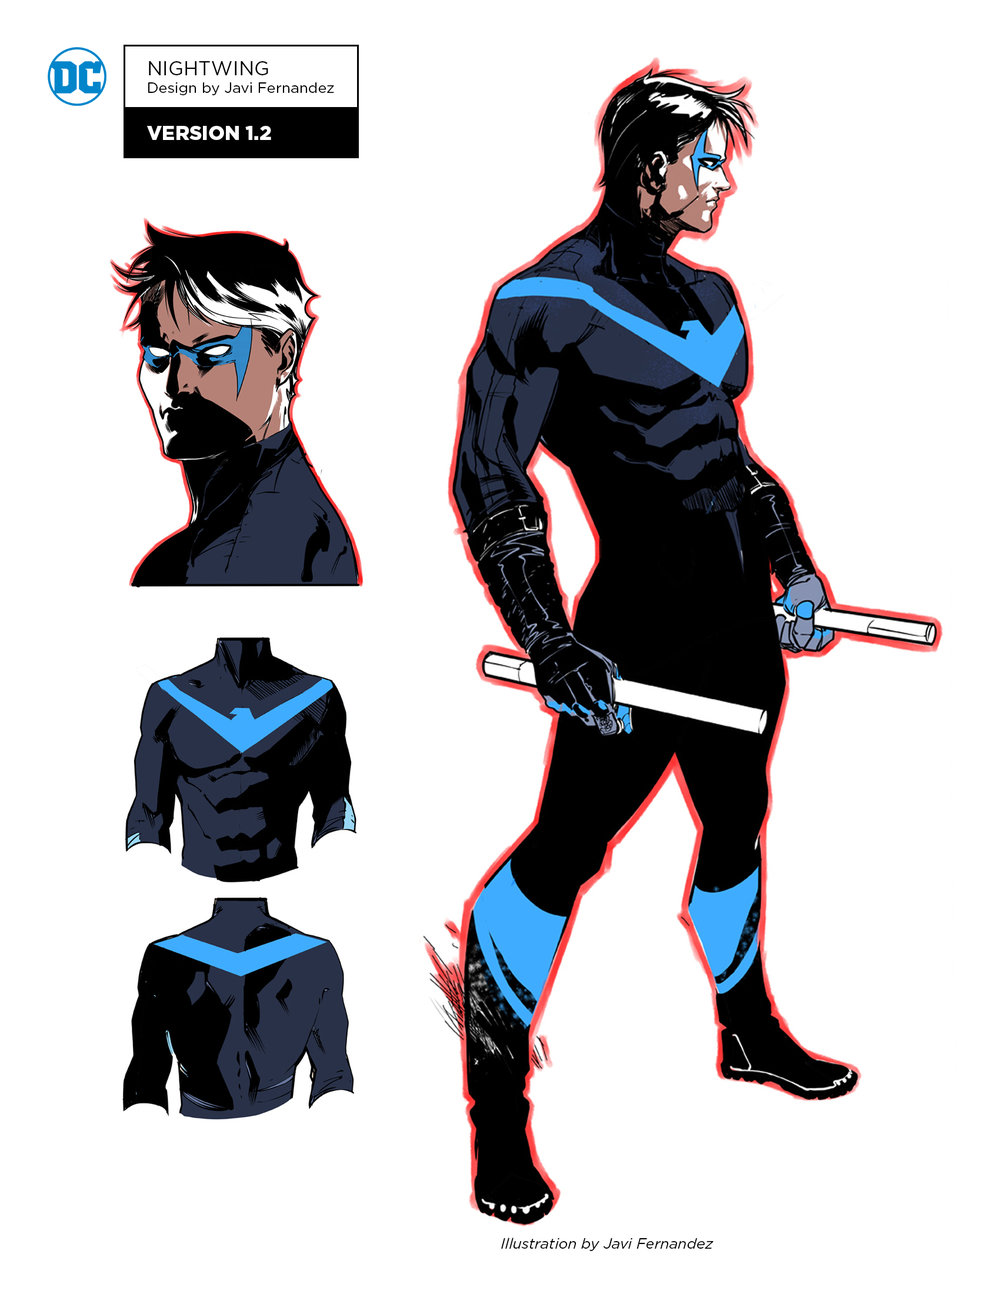 rebirth nightwing.jpg